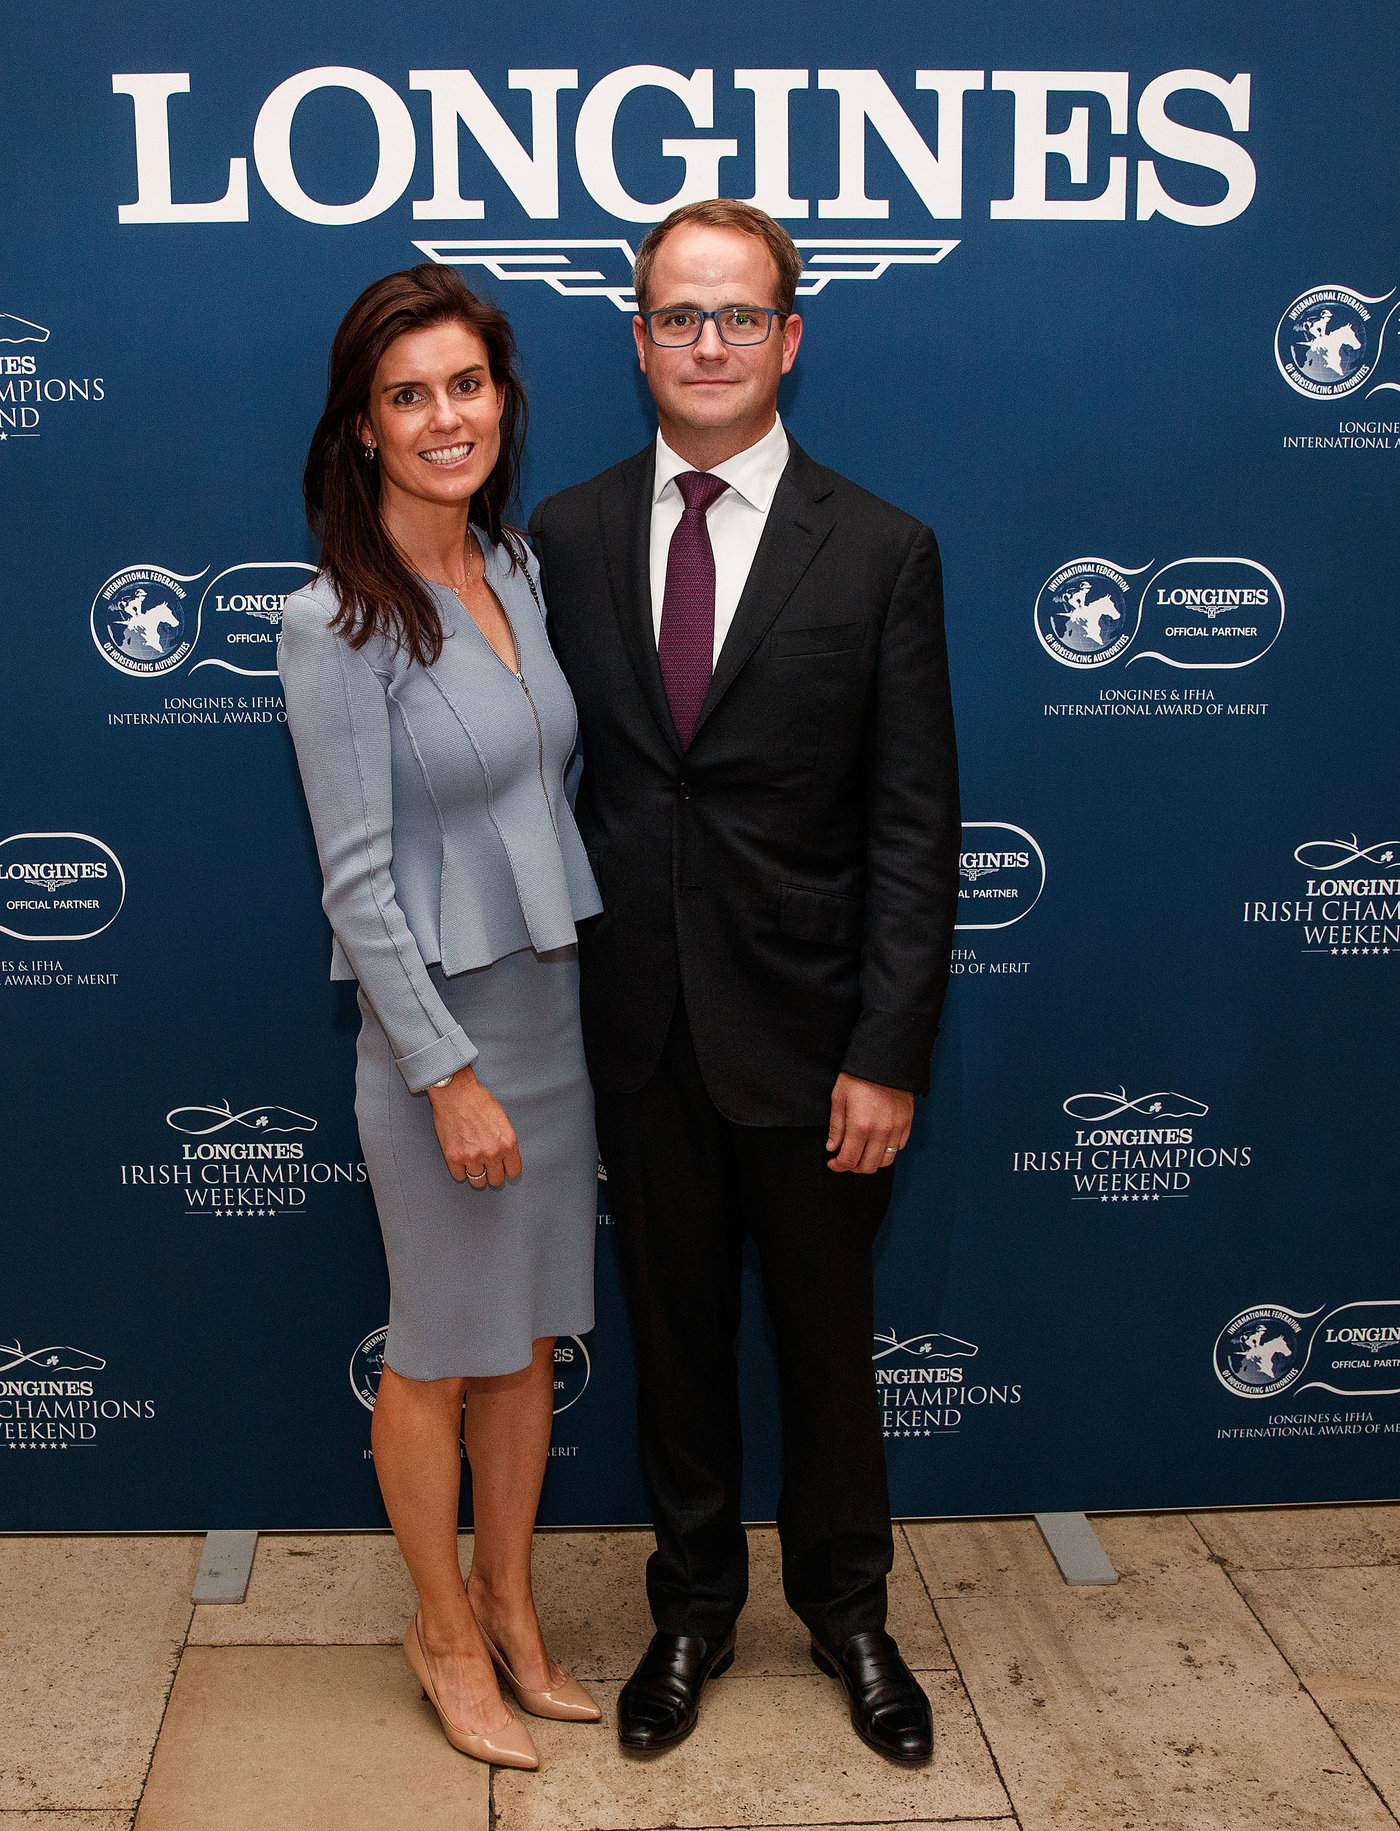 Longines Flat Racing Event: Magnier Family, O'Brien Receive  2018 Longines and IFHA International Award of Merit 6